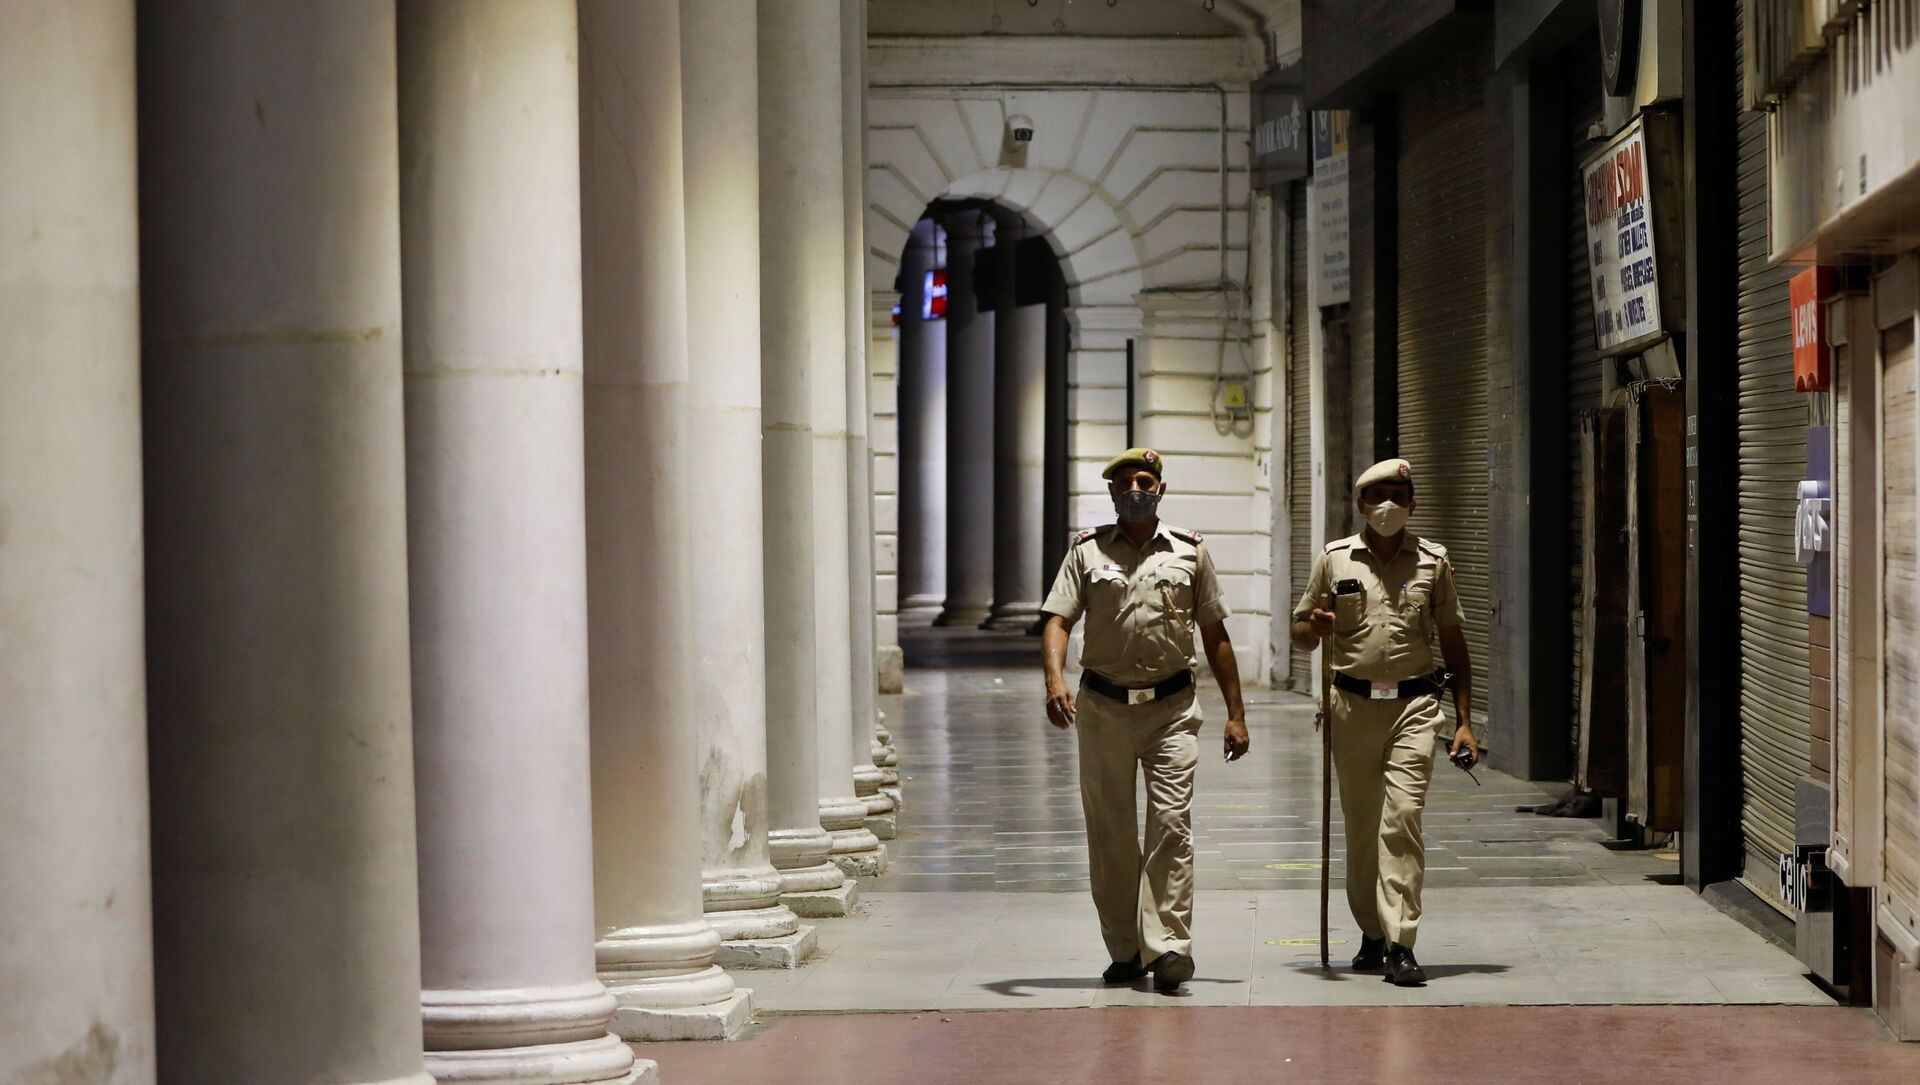 Police officers patrol in front of closed shops at a market area during a curfew to limit the spread of the coronavirus disease (COVID-19), in New Delhi, India, 6 April 2021. - Sputnik International, 1920, 01.05.2021